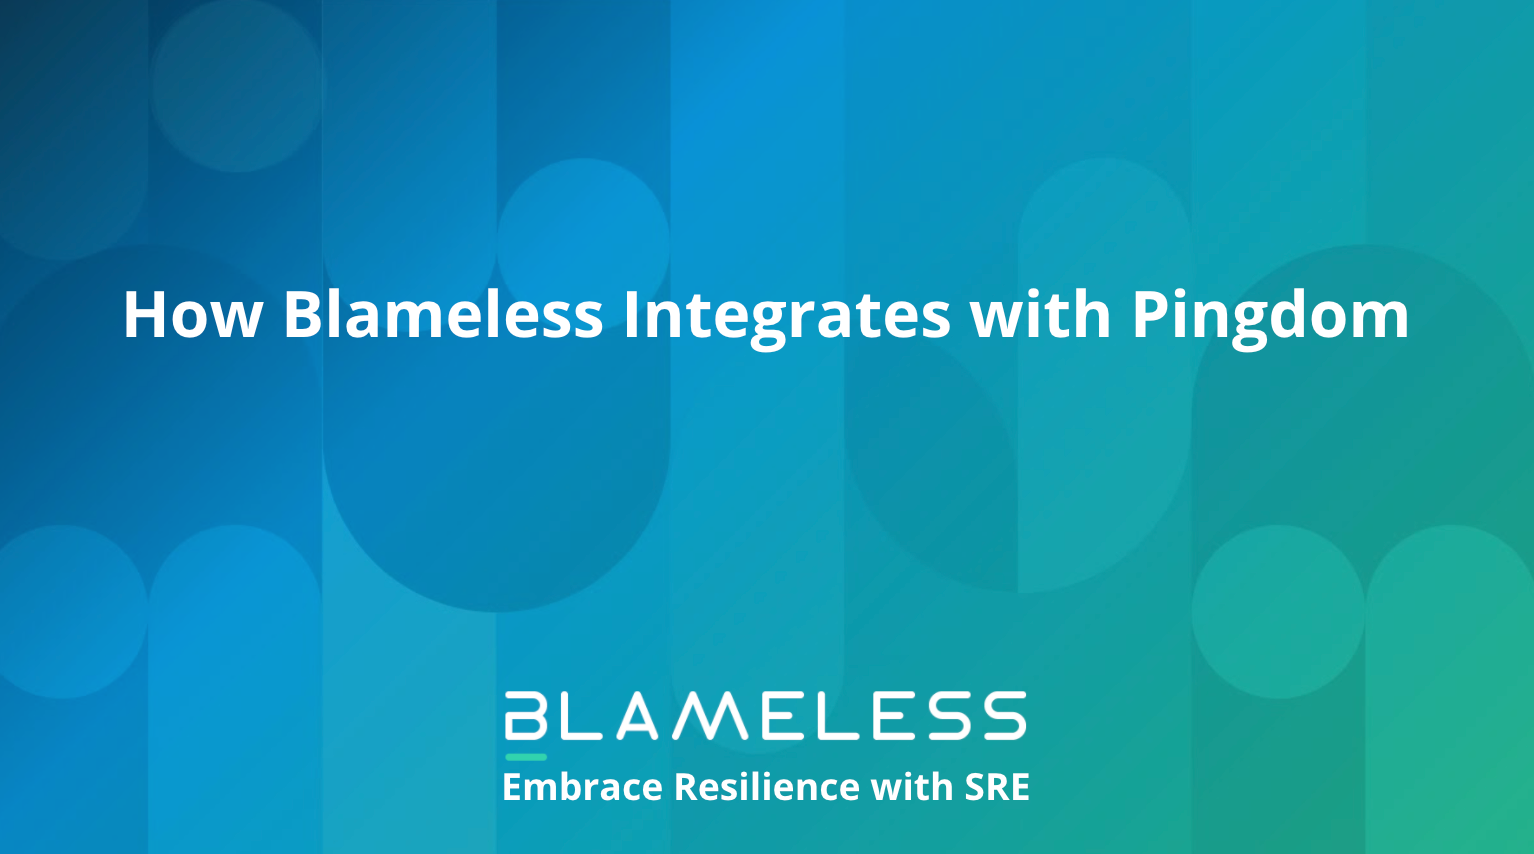 How Blameless Integrates with Pingdom